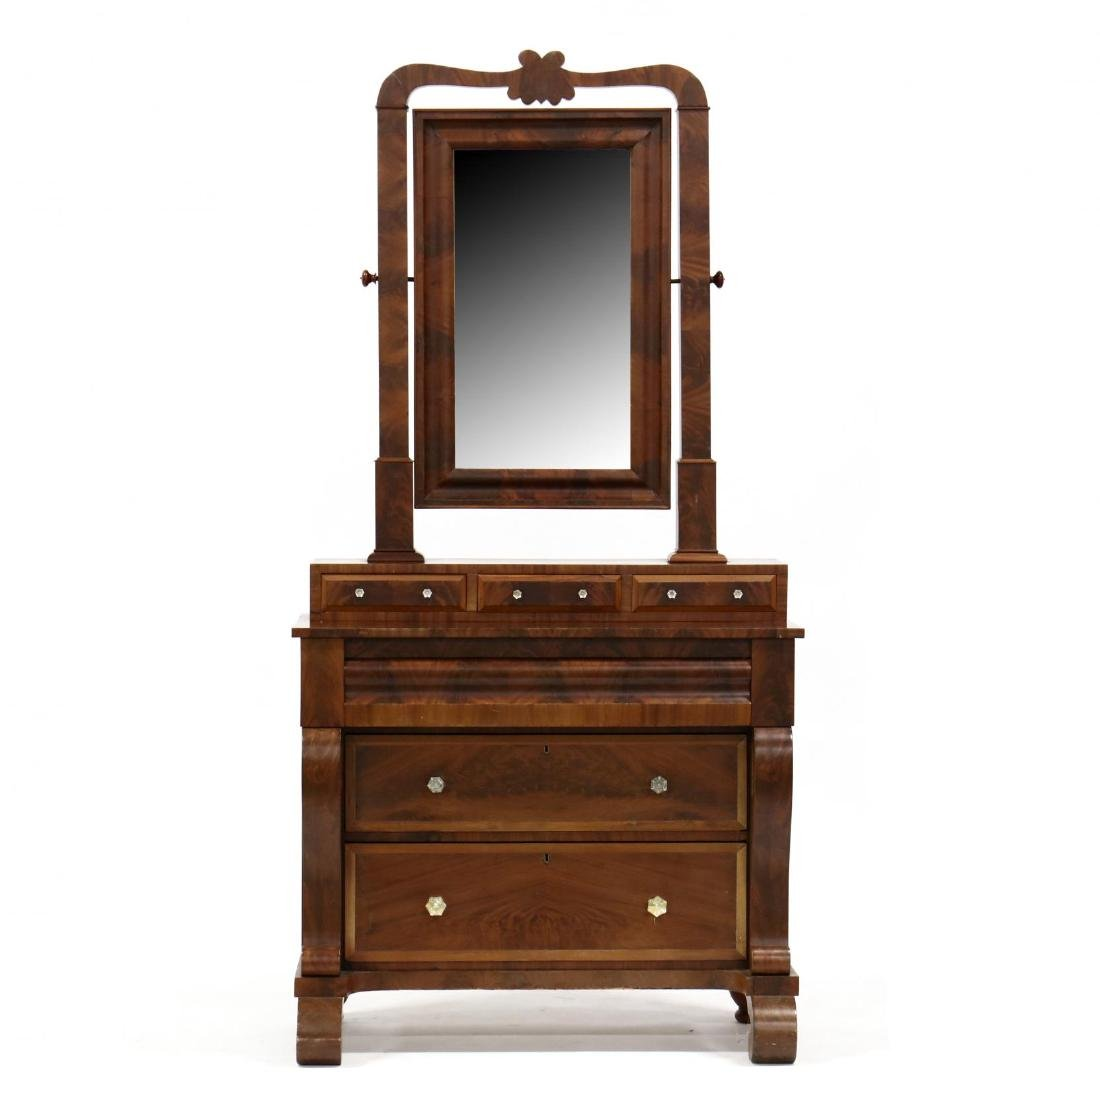 Southern Late Classical Dresser with Mirror